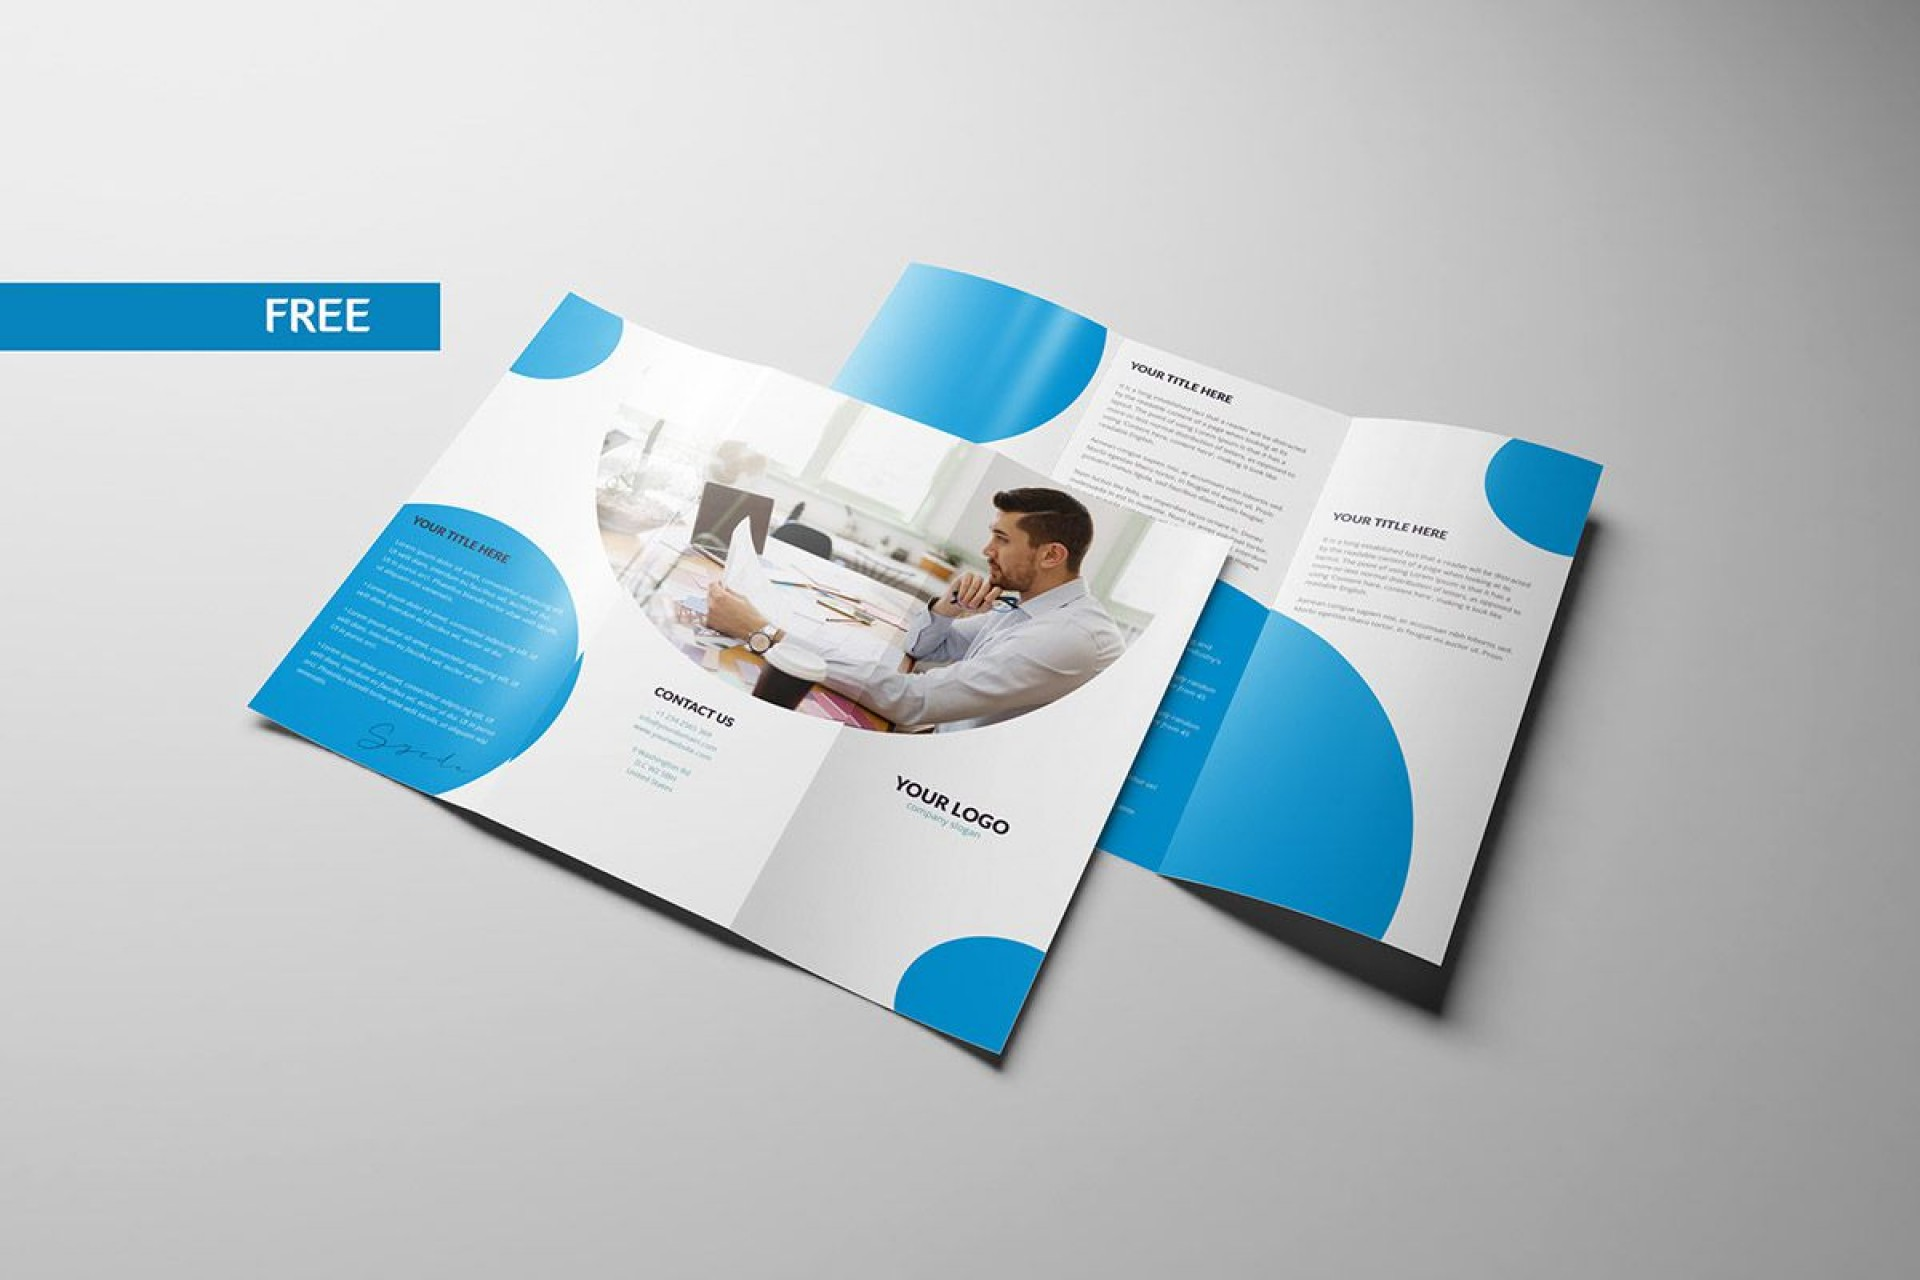 004 Archaicawful Free Tri Fold Brochure Template High Definition  Microsoft Word 2010 Download Ai Downloadable For1920